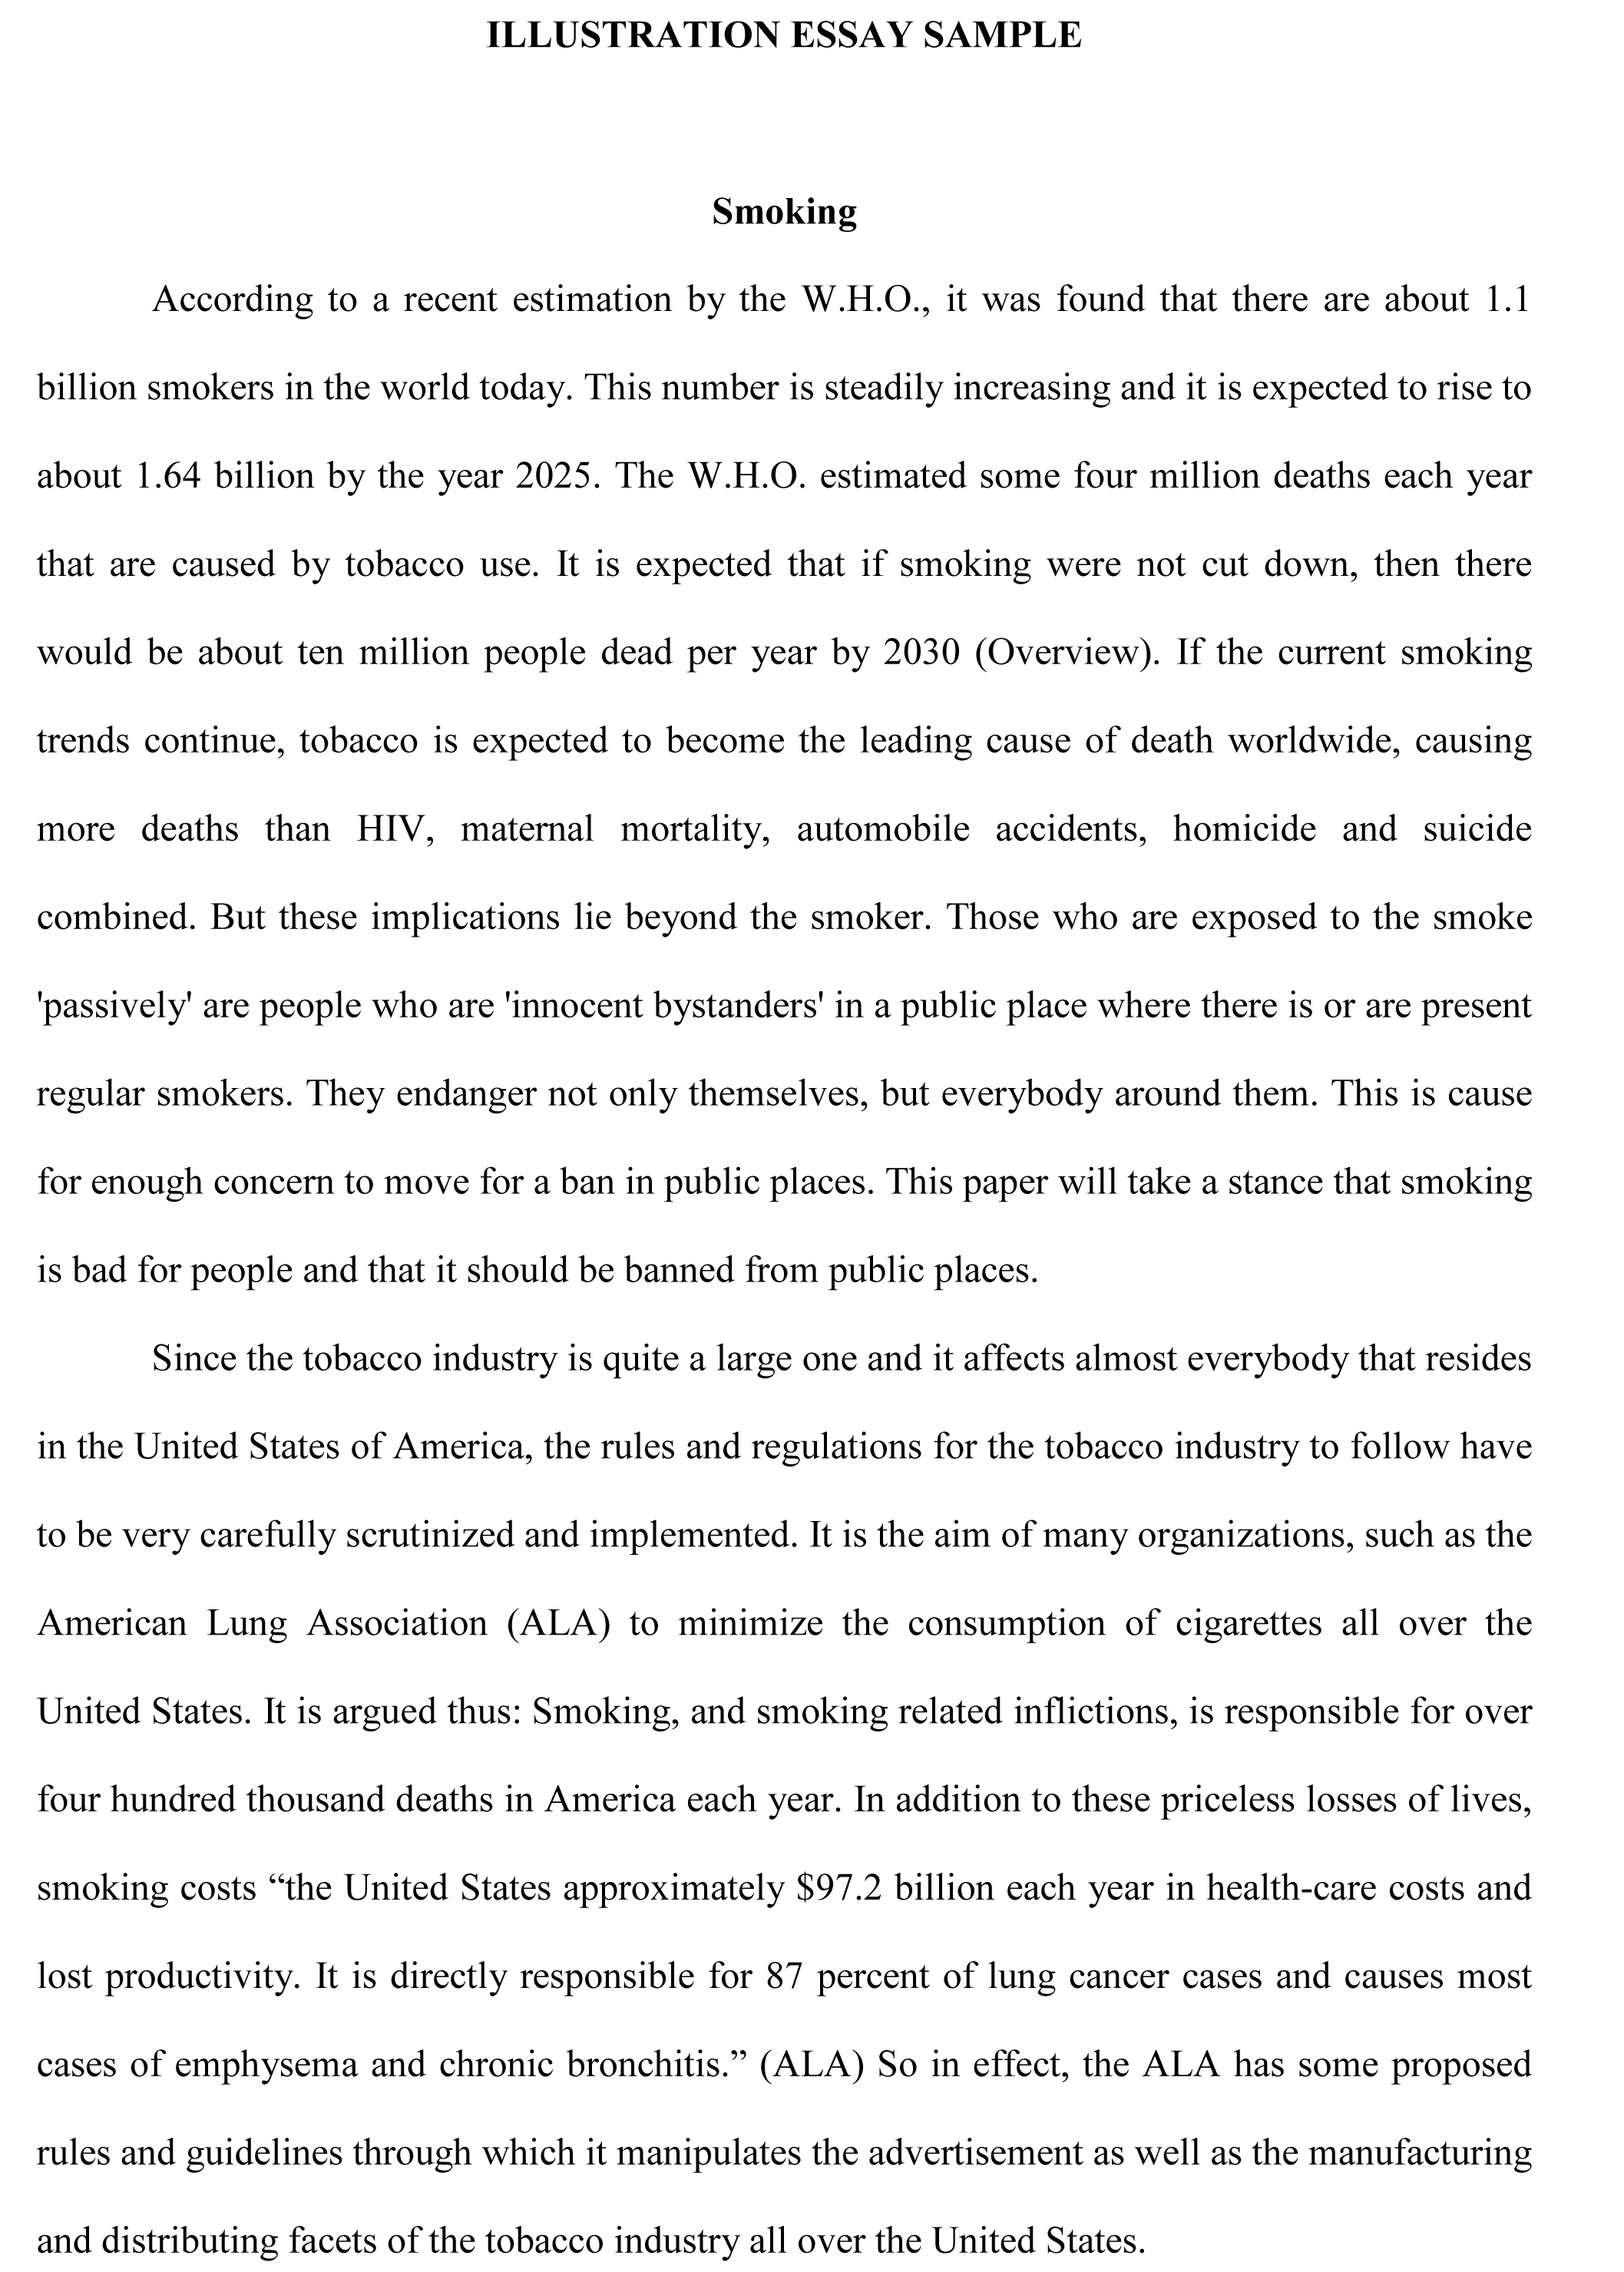 019 Illustration Essay Sample Example Humorous Outstanding Essays Funny In English For High School On Marriage Full